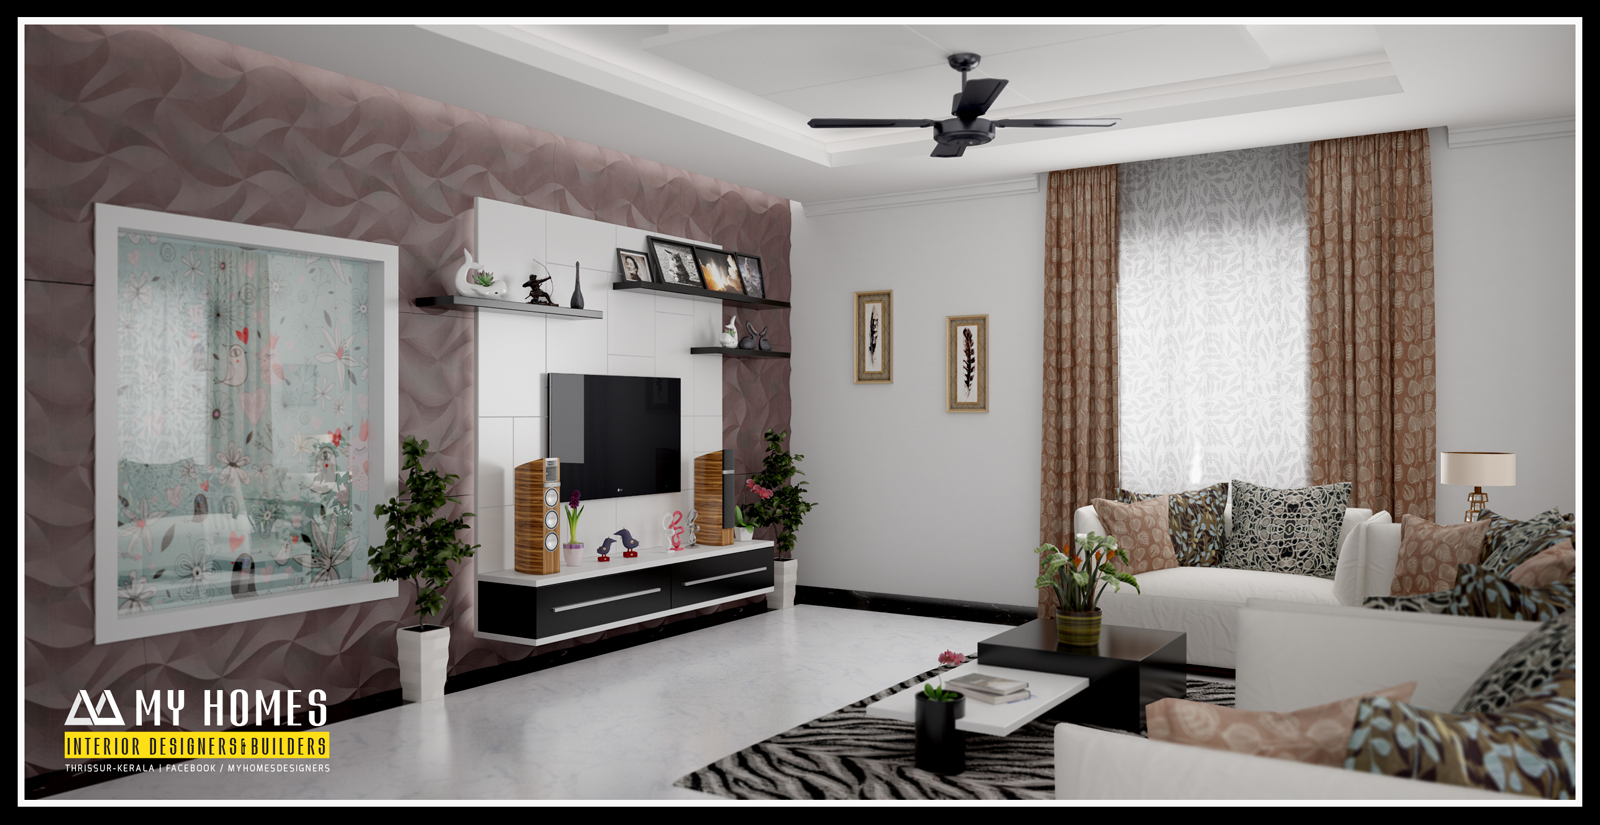 House Decoration Company Kerala Interior Design Ideas From Designing Company Thrissur